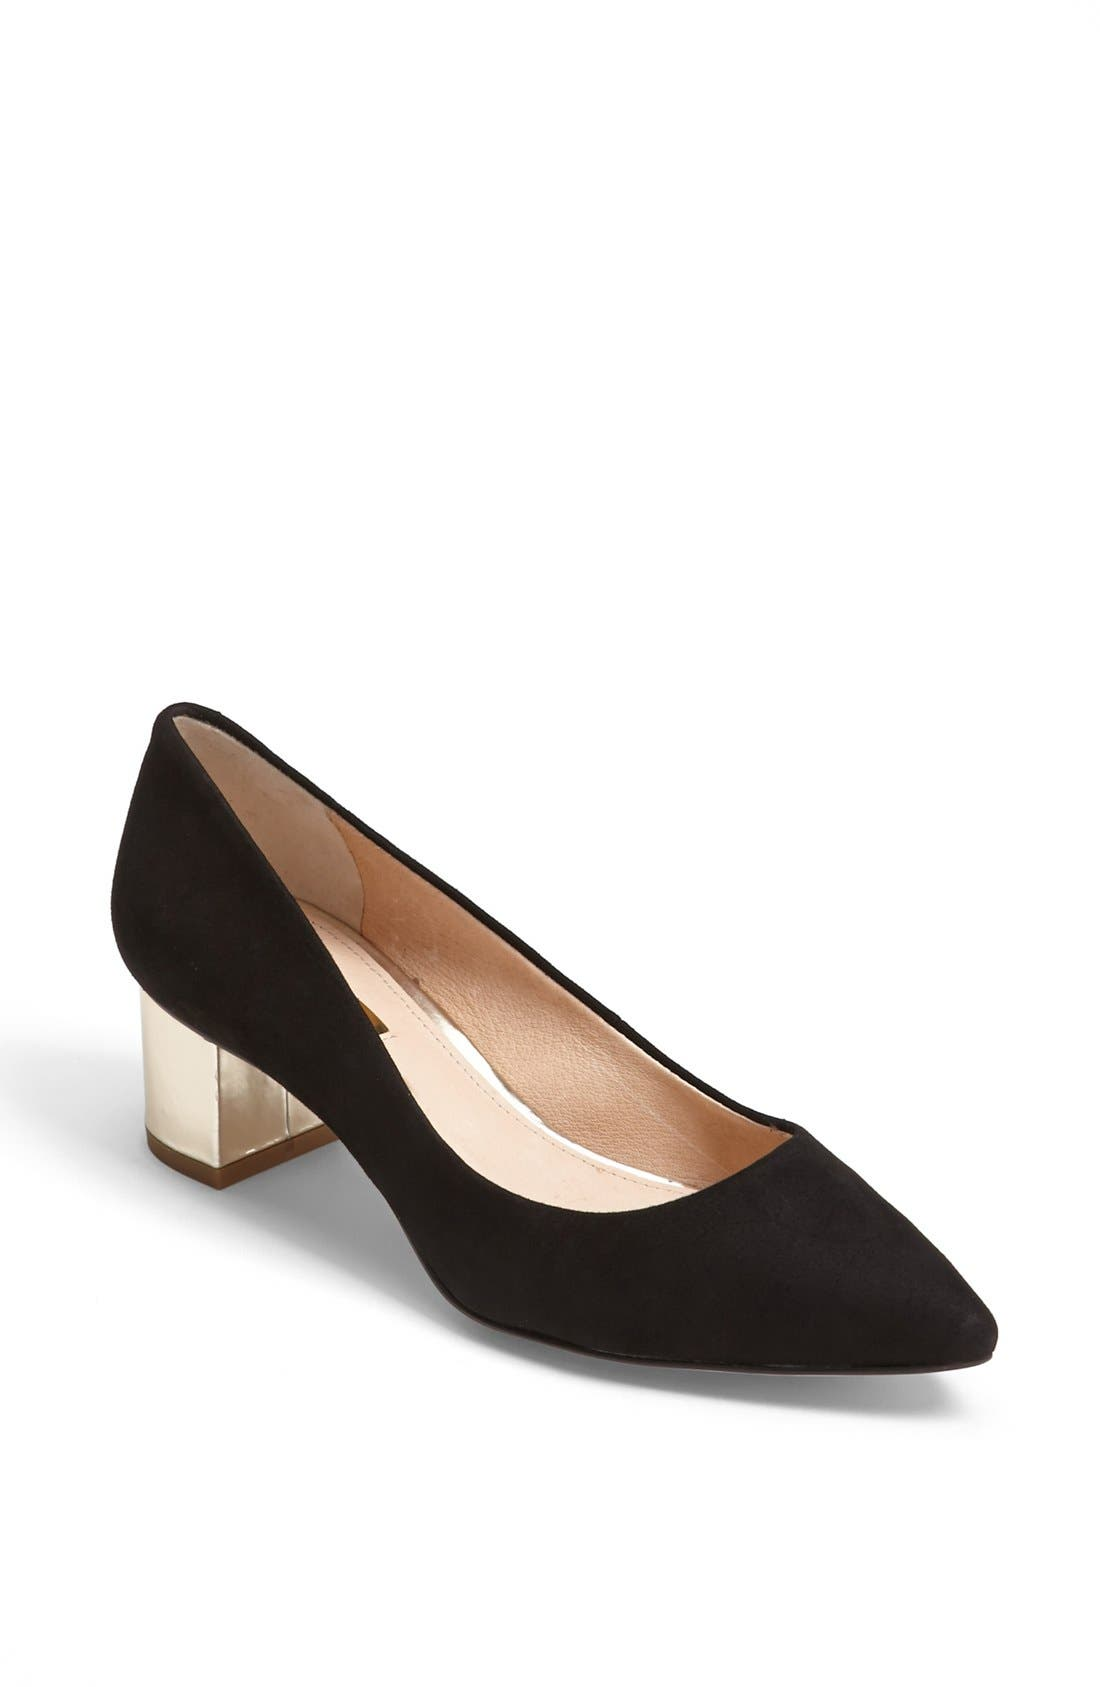 Alternate Image 1 Selected - Louise et Cie 'Jadyn' Pointed Toe Pump